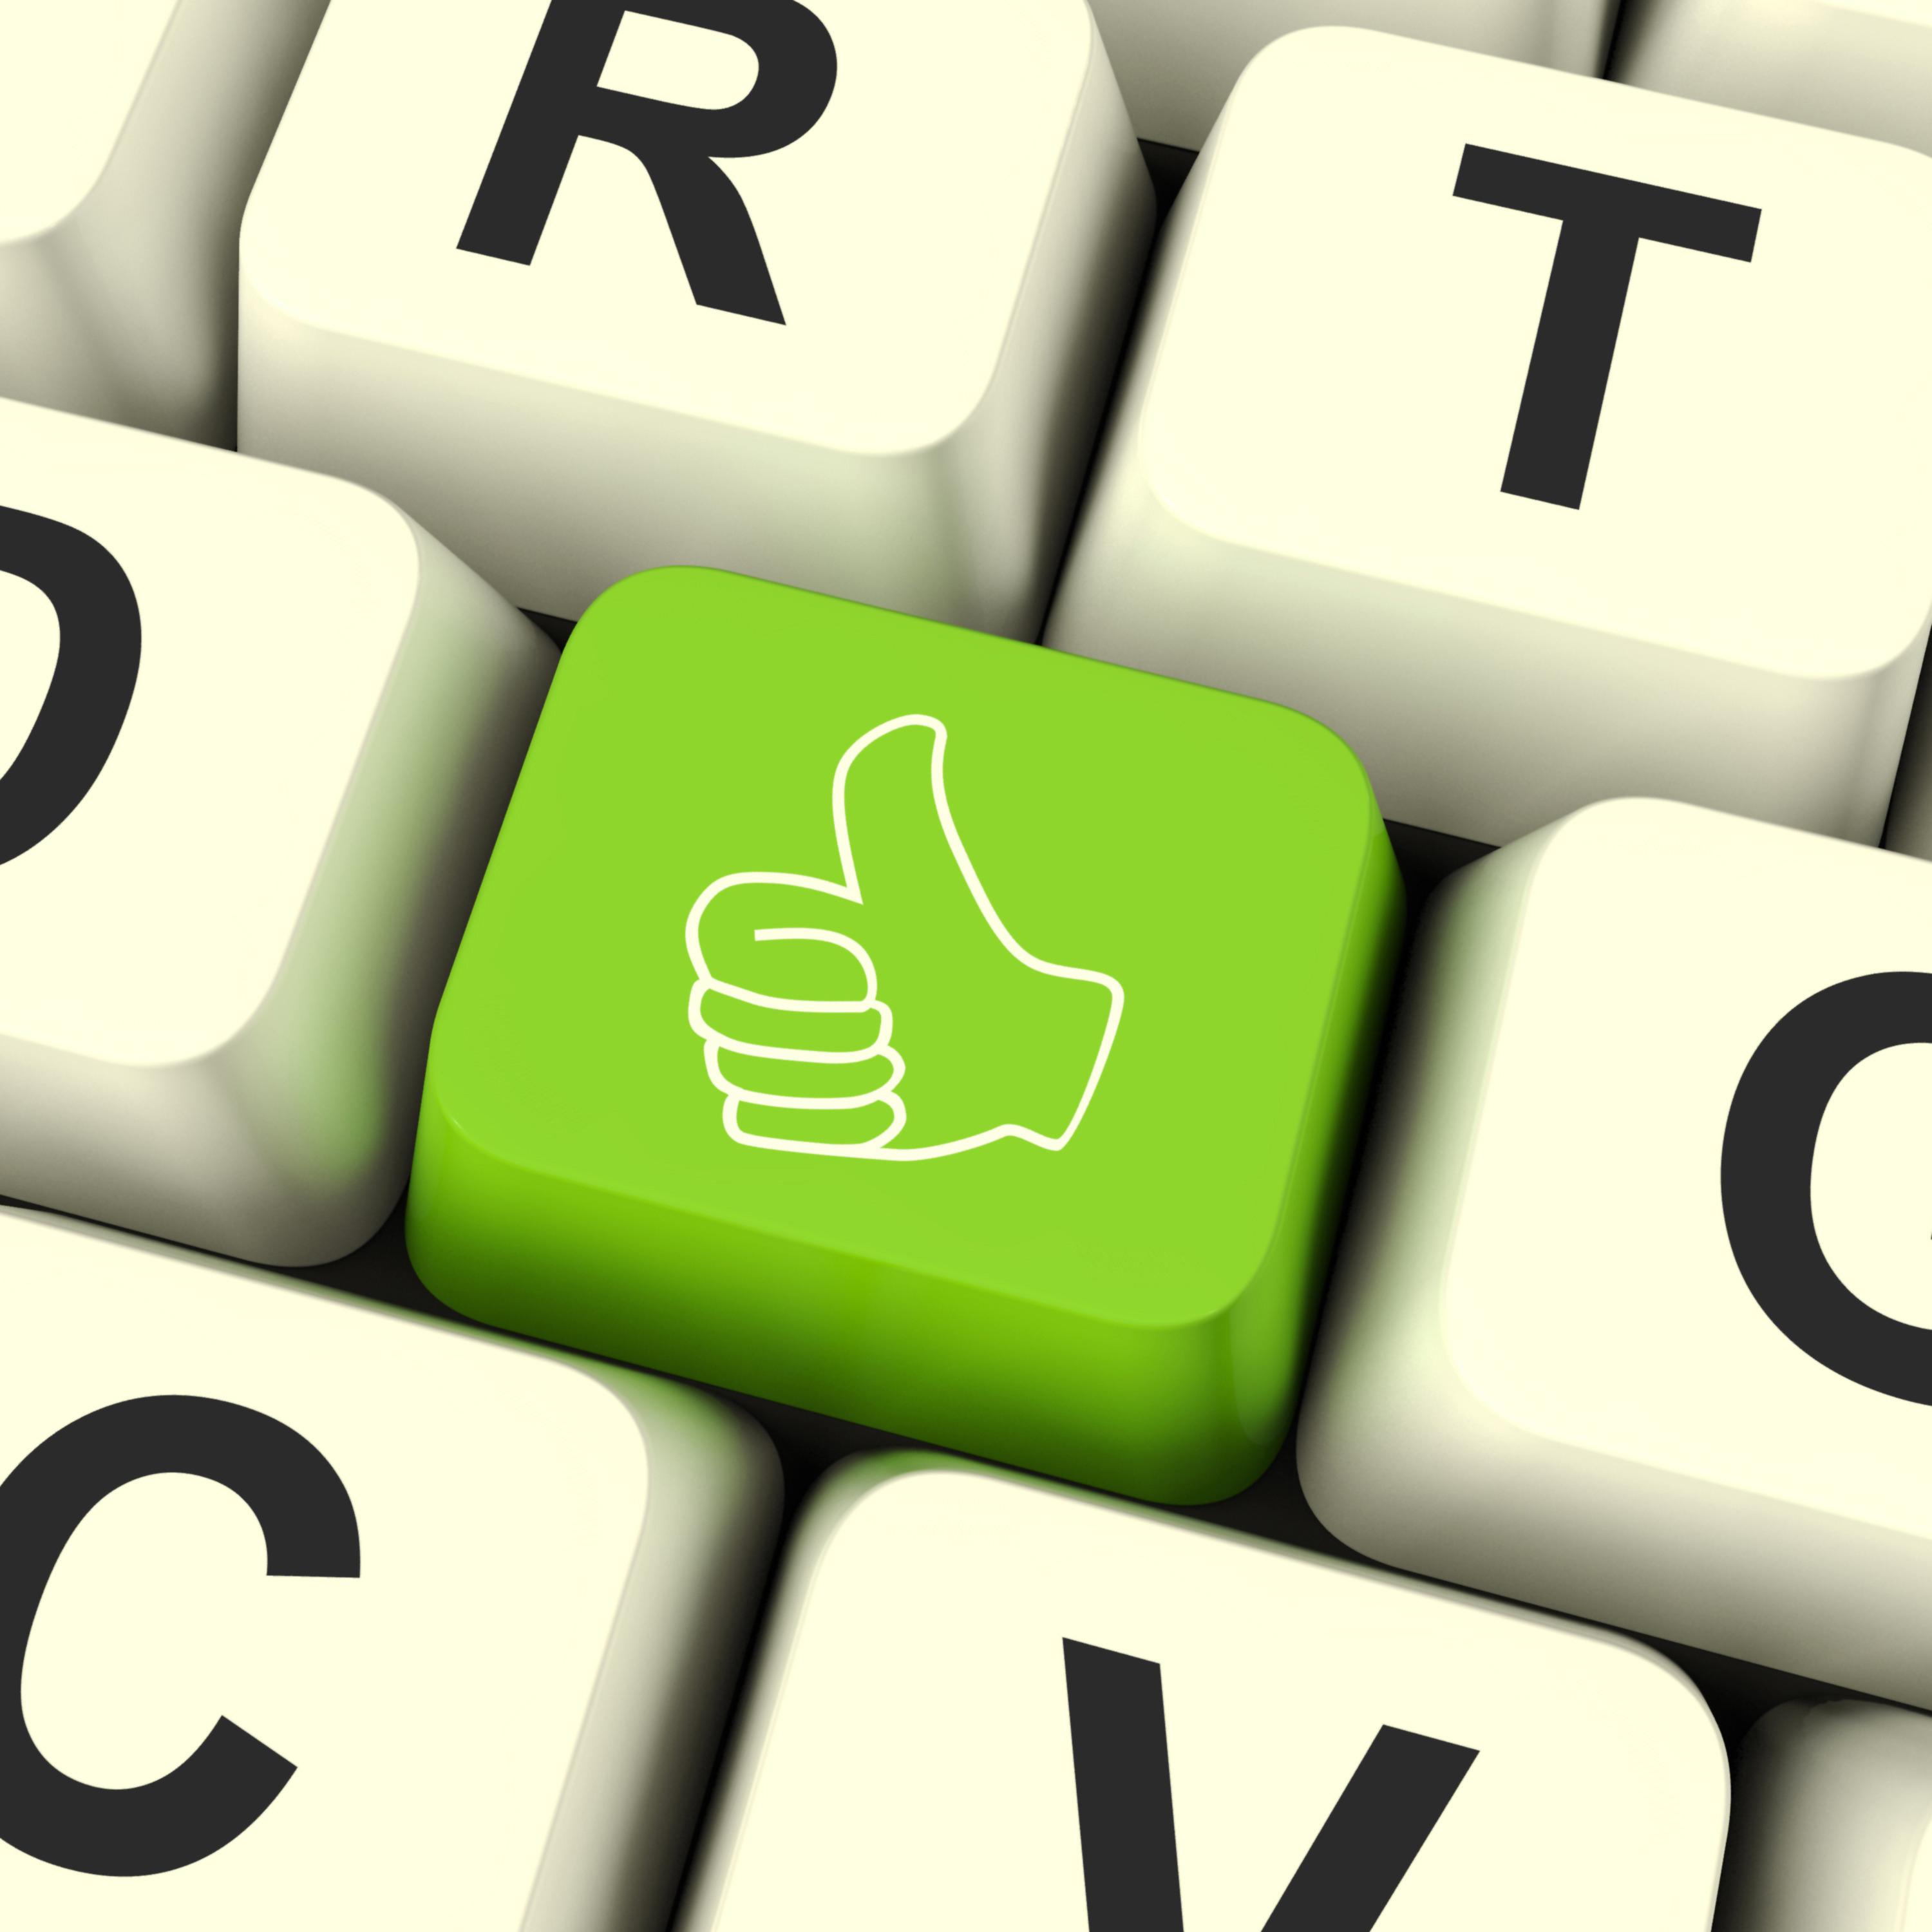 Thumbs Up Computer Key Showing Approval And Being A Fan